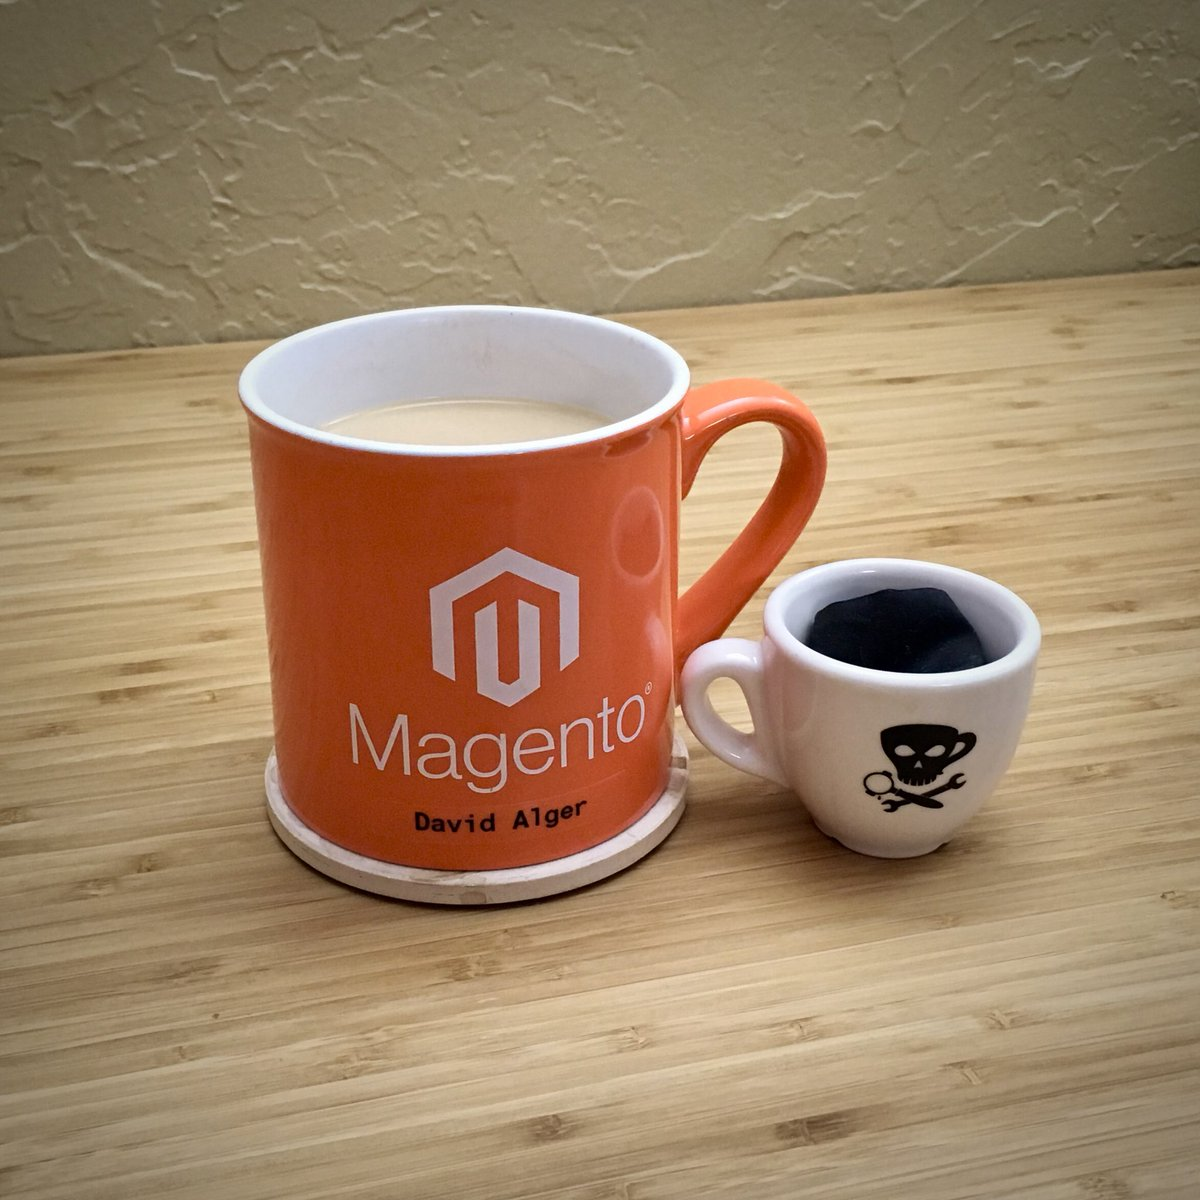 blackbooker: Thanks to #MagentoImagine my mug has received an upgrade! 😂 https://t.co/k9da0C3FuC